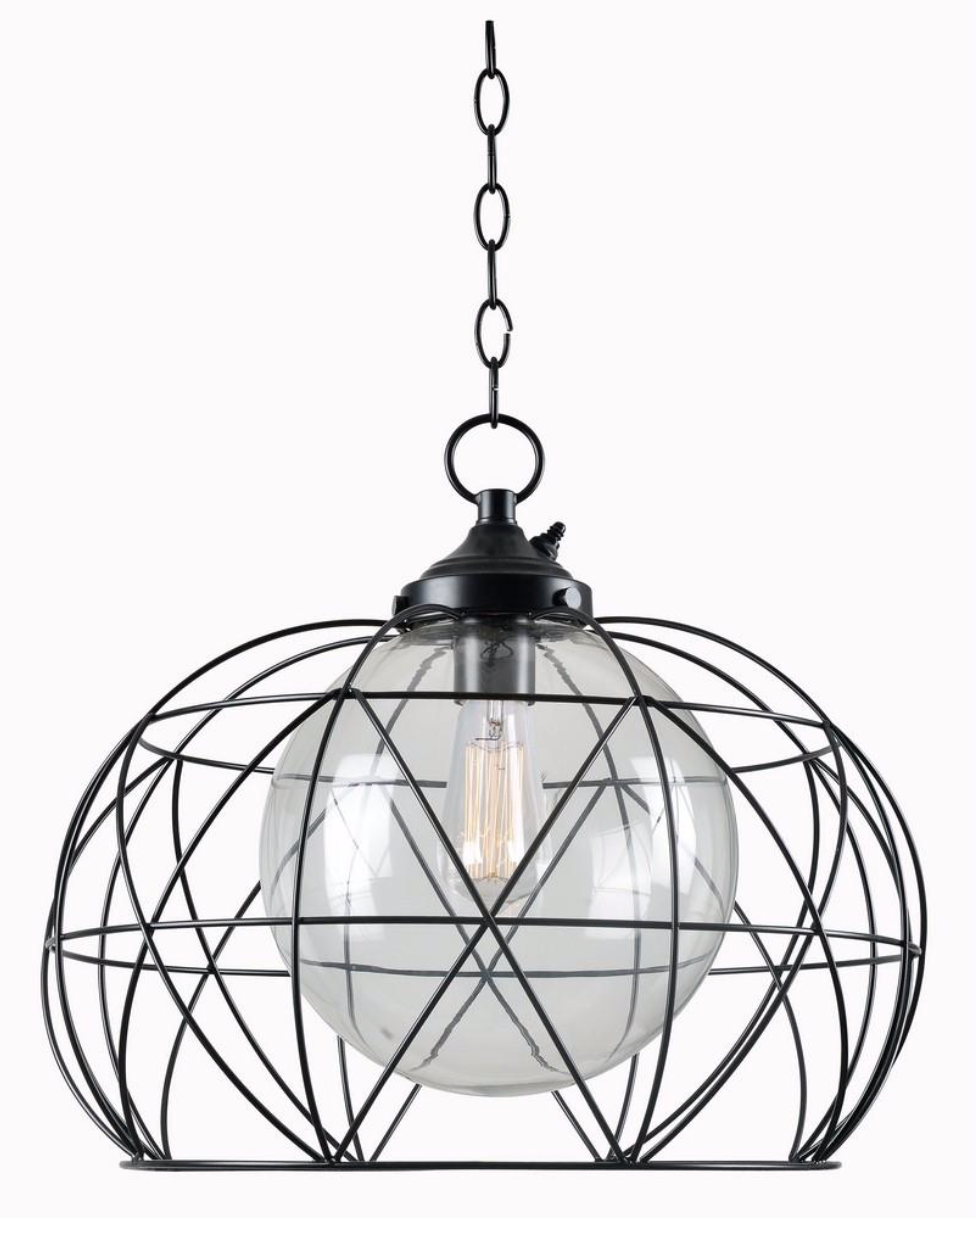 Edgy Contemporary Style Meets The Great Outdoors This 1 Light Outdoor Pendant Is A Plug And Pla With Images Outdoor Hanging Lights Outdoor Ceiling Lights Outdoor Lighting